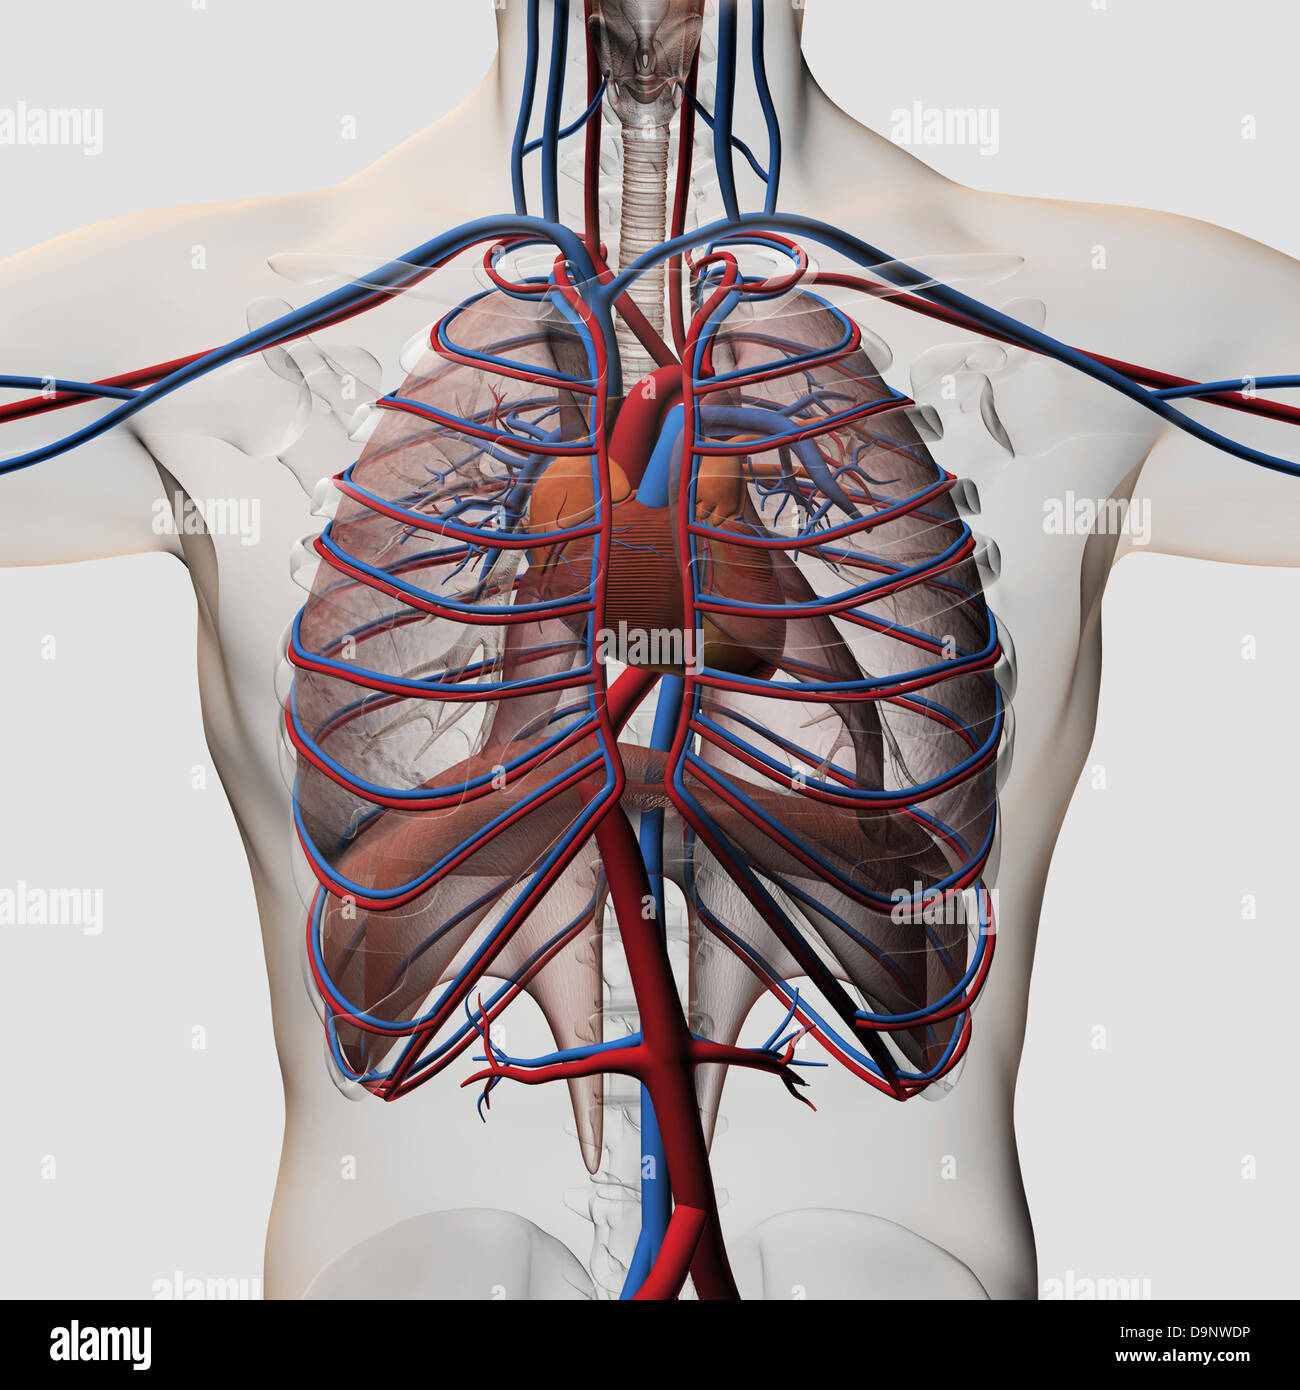 Three dimensional medical illustration of male chest showing arteries, veins, heart and rib cage. - Stock Image